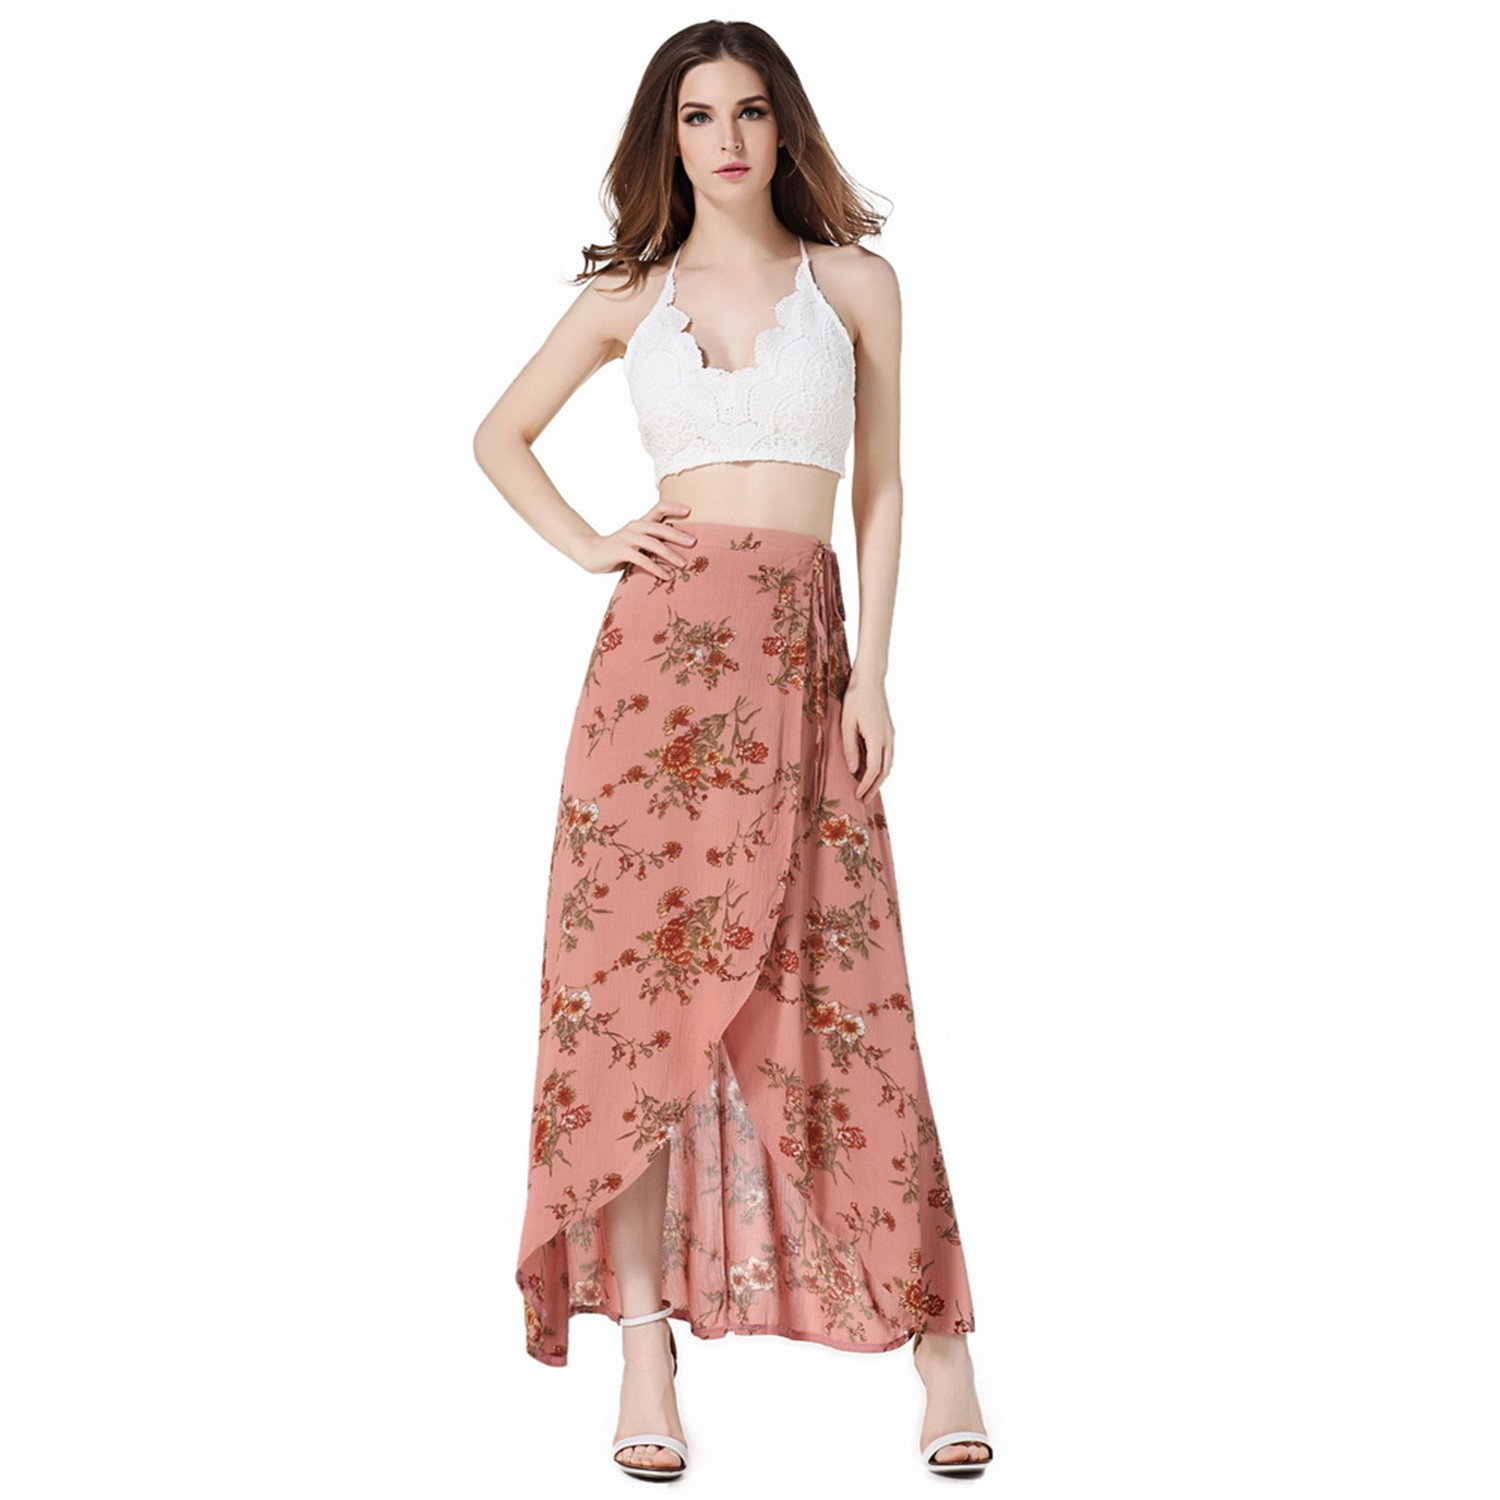 Pink Glugerge Lace up Waist Ties High Waist Bohemian Skirts Sexy High Slit Irregular High Low Flower Print